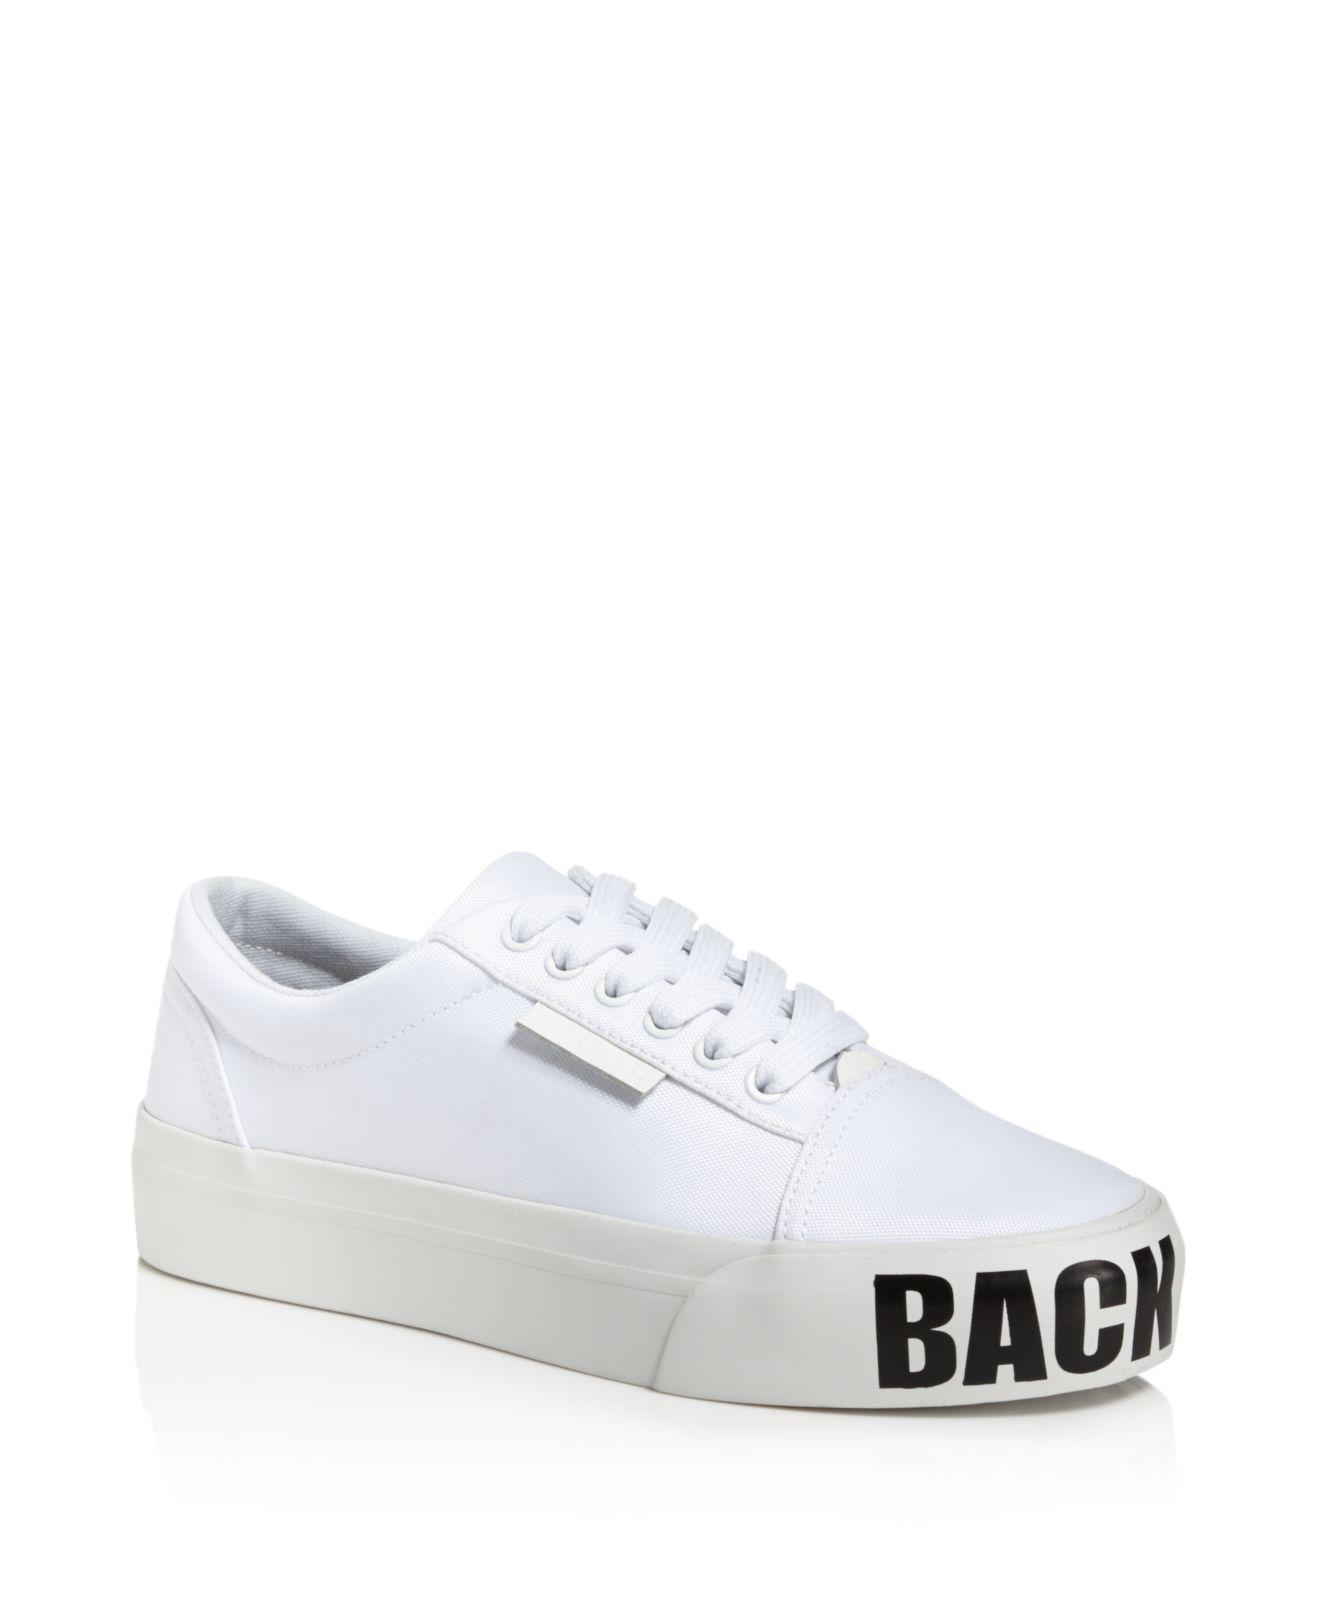 Kendall And Kylie Max Low Top Lace Up Platform Sneakers SWcXgEaN